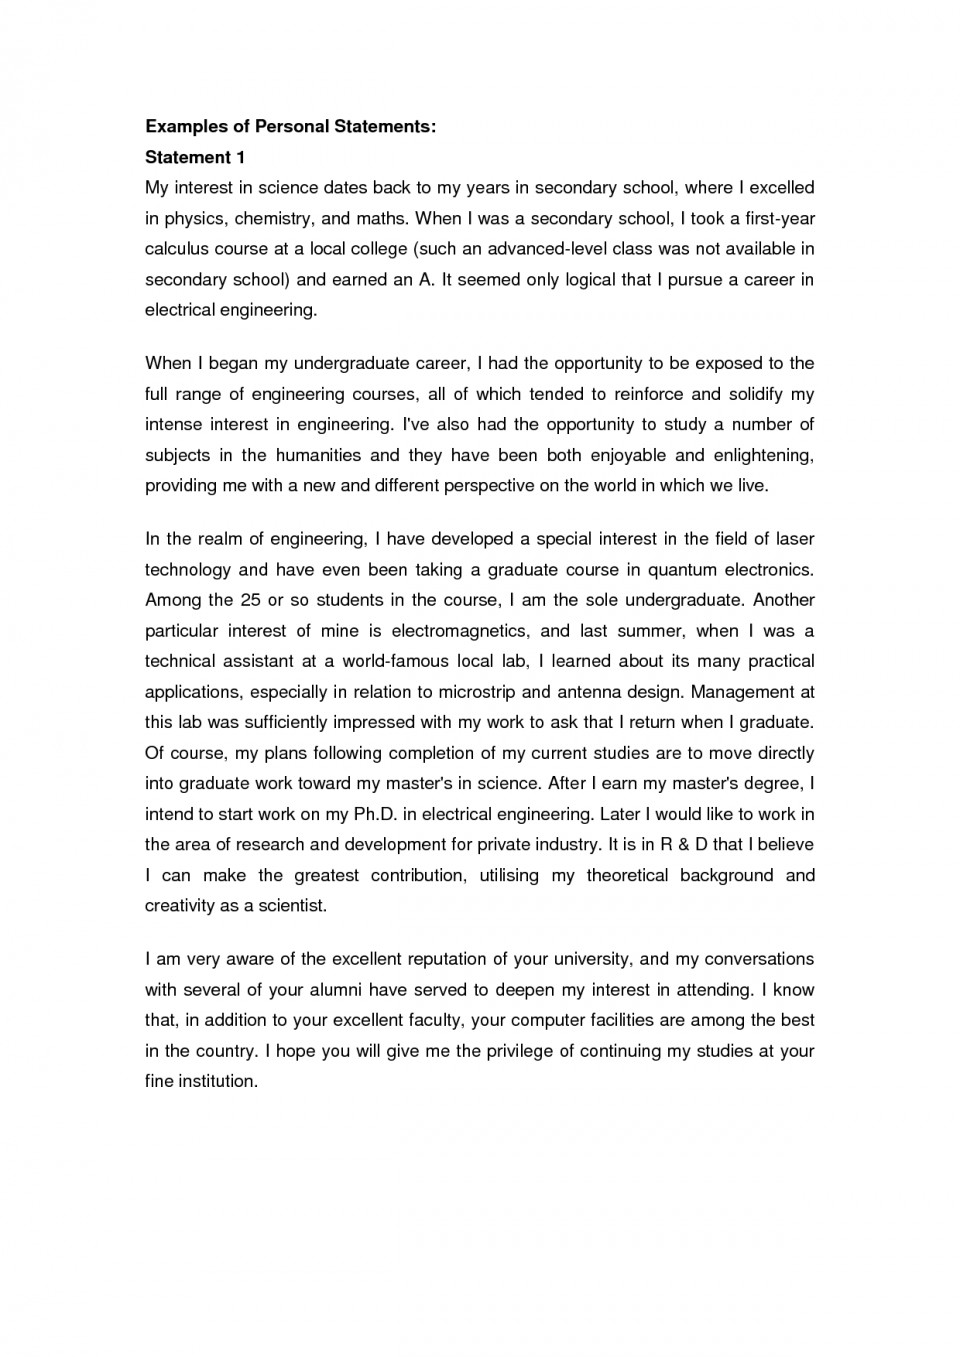 003 Personal Essay Samples Breathtaking Examples For College Good Topics High School 960